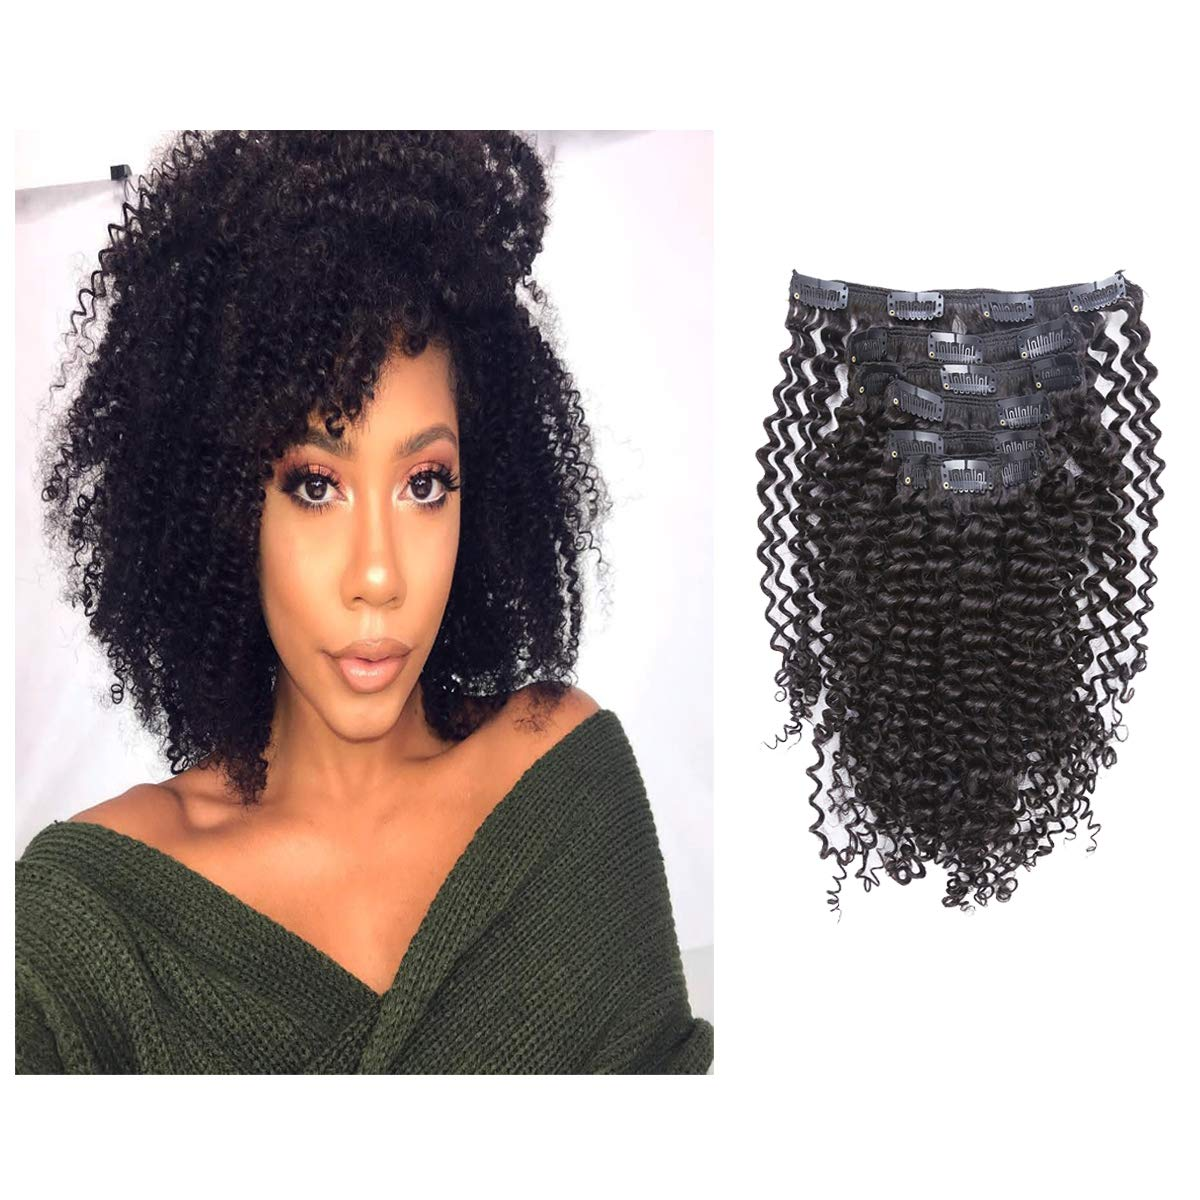 Loxxy Kinky Curly Clip in Human Hair Extensions 3B 3C Kinky Clip Ins Nutural Black Color 8A Afro Kinkys Curly Hair Extensions Clip For Black Women In Double Wefts Real Remy Hair ,120G,10 Inch